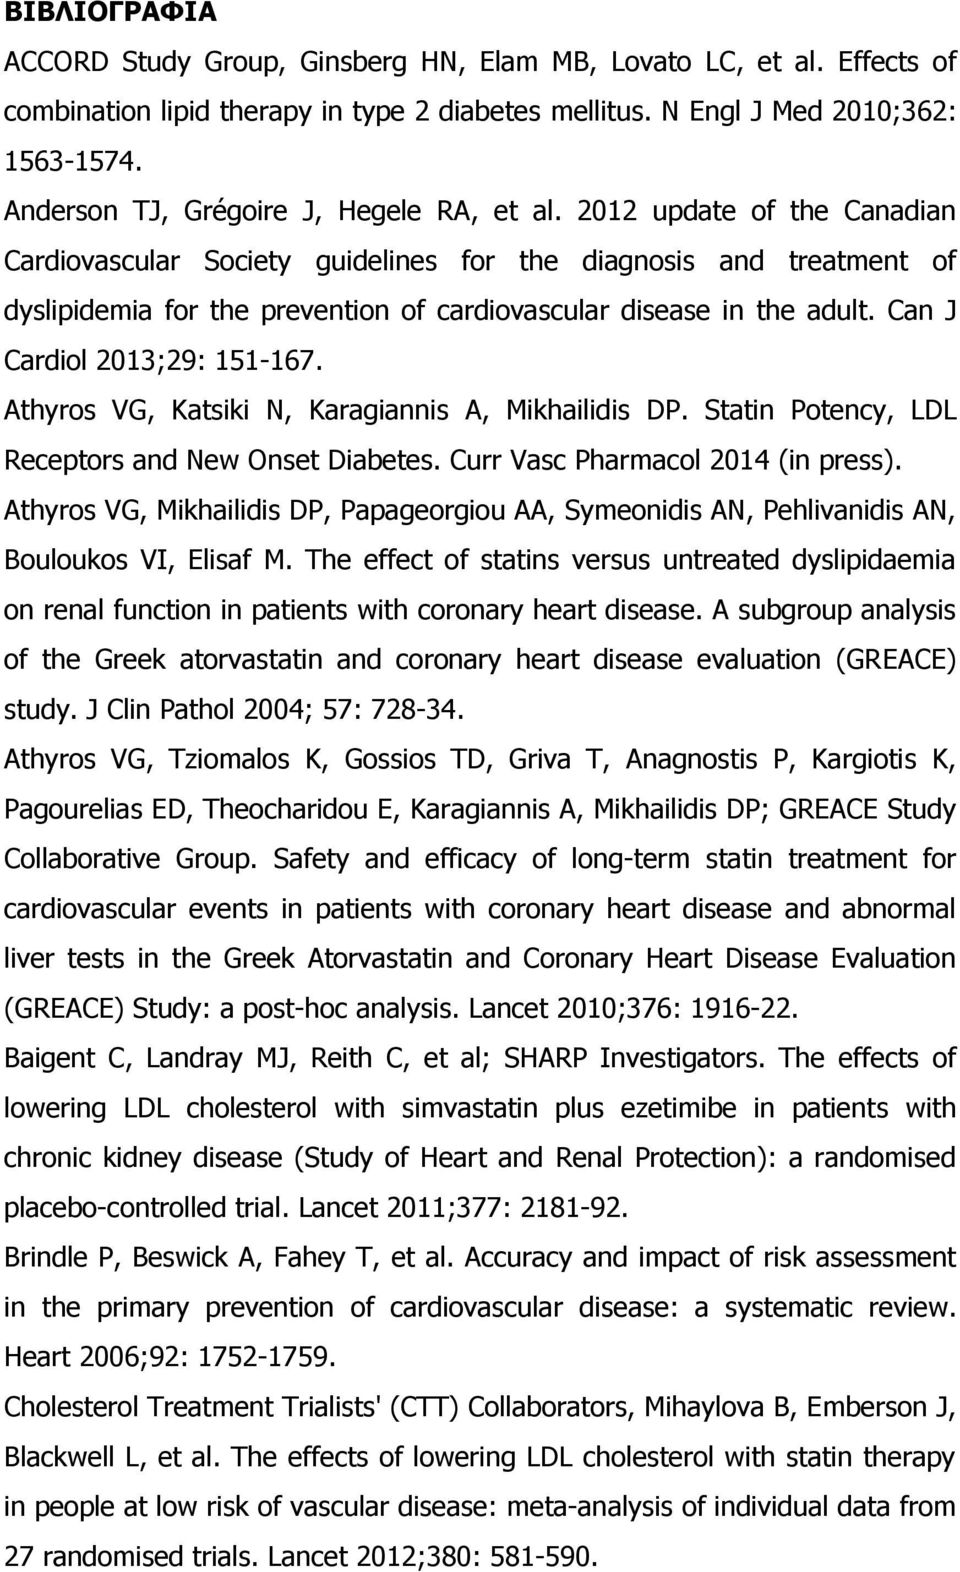 2012 update of the Canadian Cardiovascular Society guidelines for the diagnosis and treatment of dyslipidemia for the prevention of cardiovascular disease in the adult. Can J Cardiol 2013;29: 151-167.